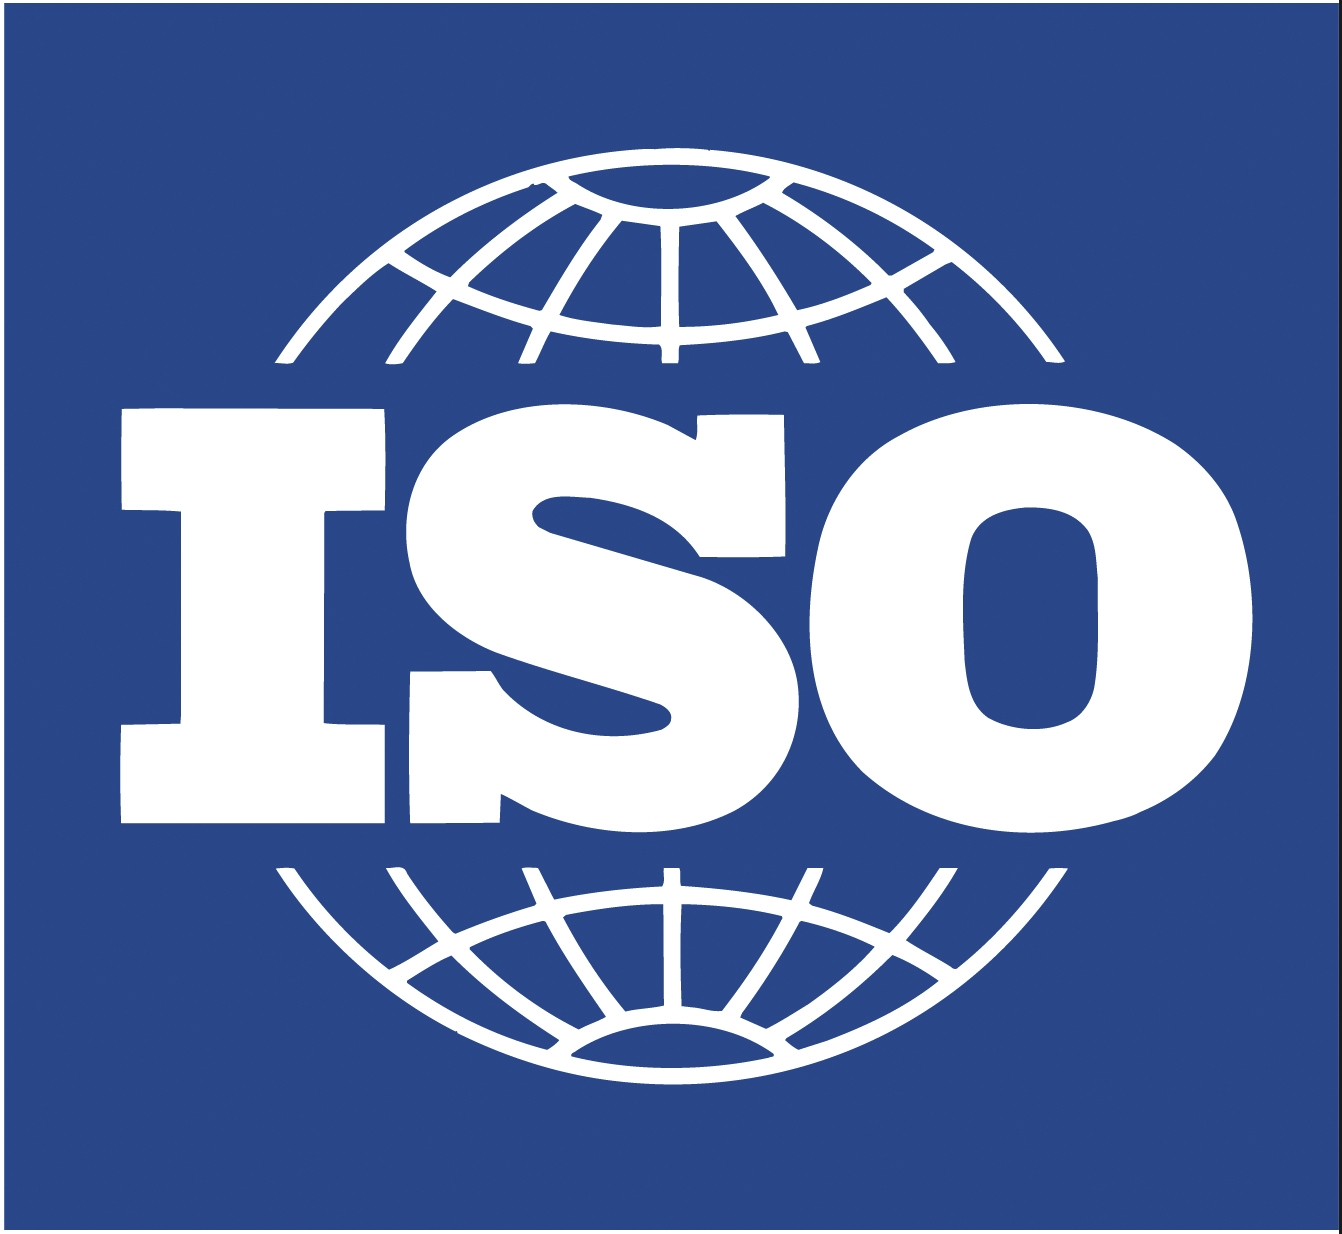 INTERNATIONAL ORGANISATION FOR STANDARDISATION (ISO) – FIRE SIGNS